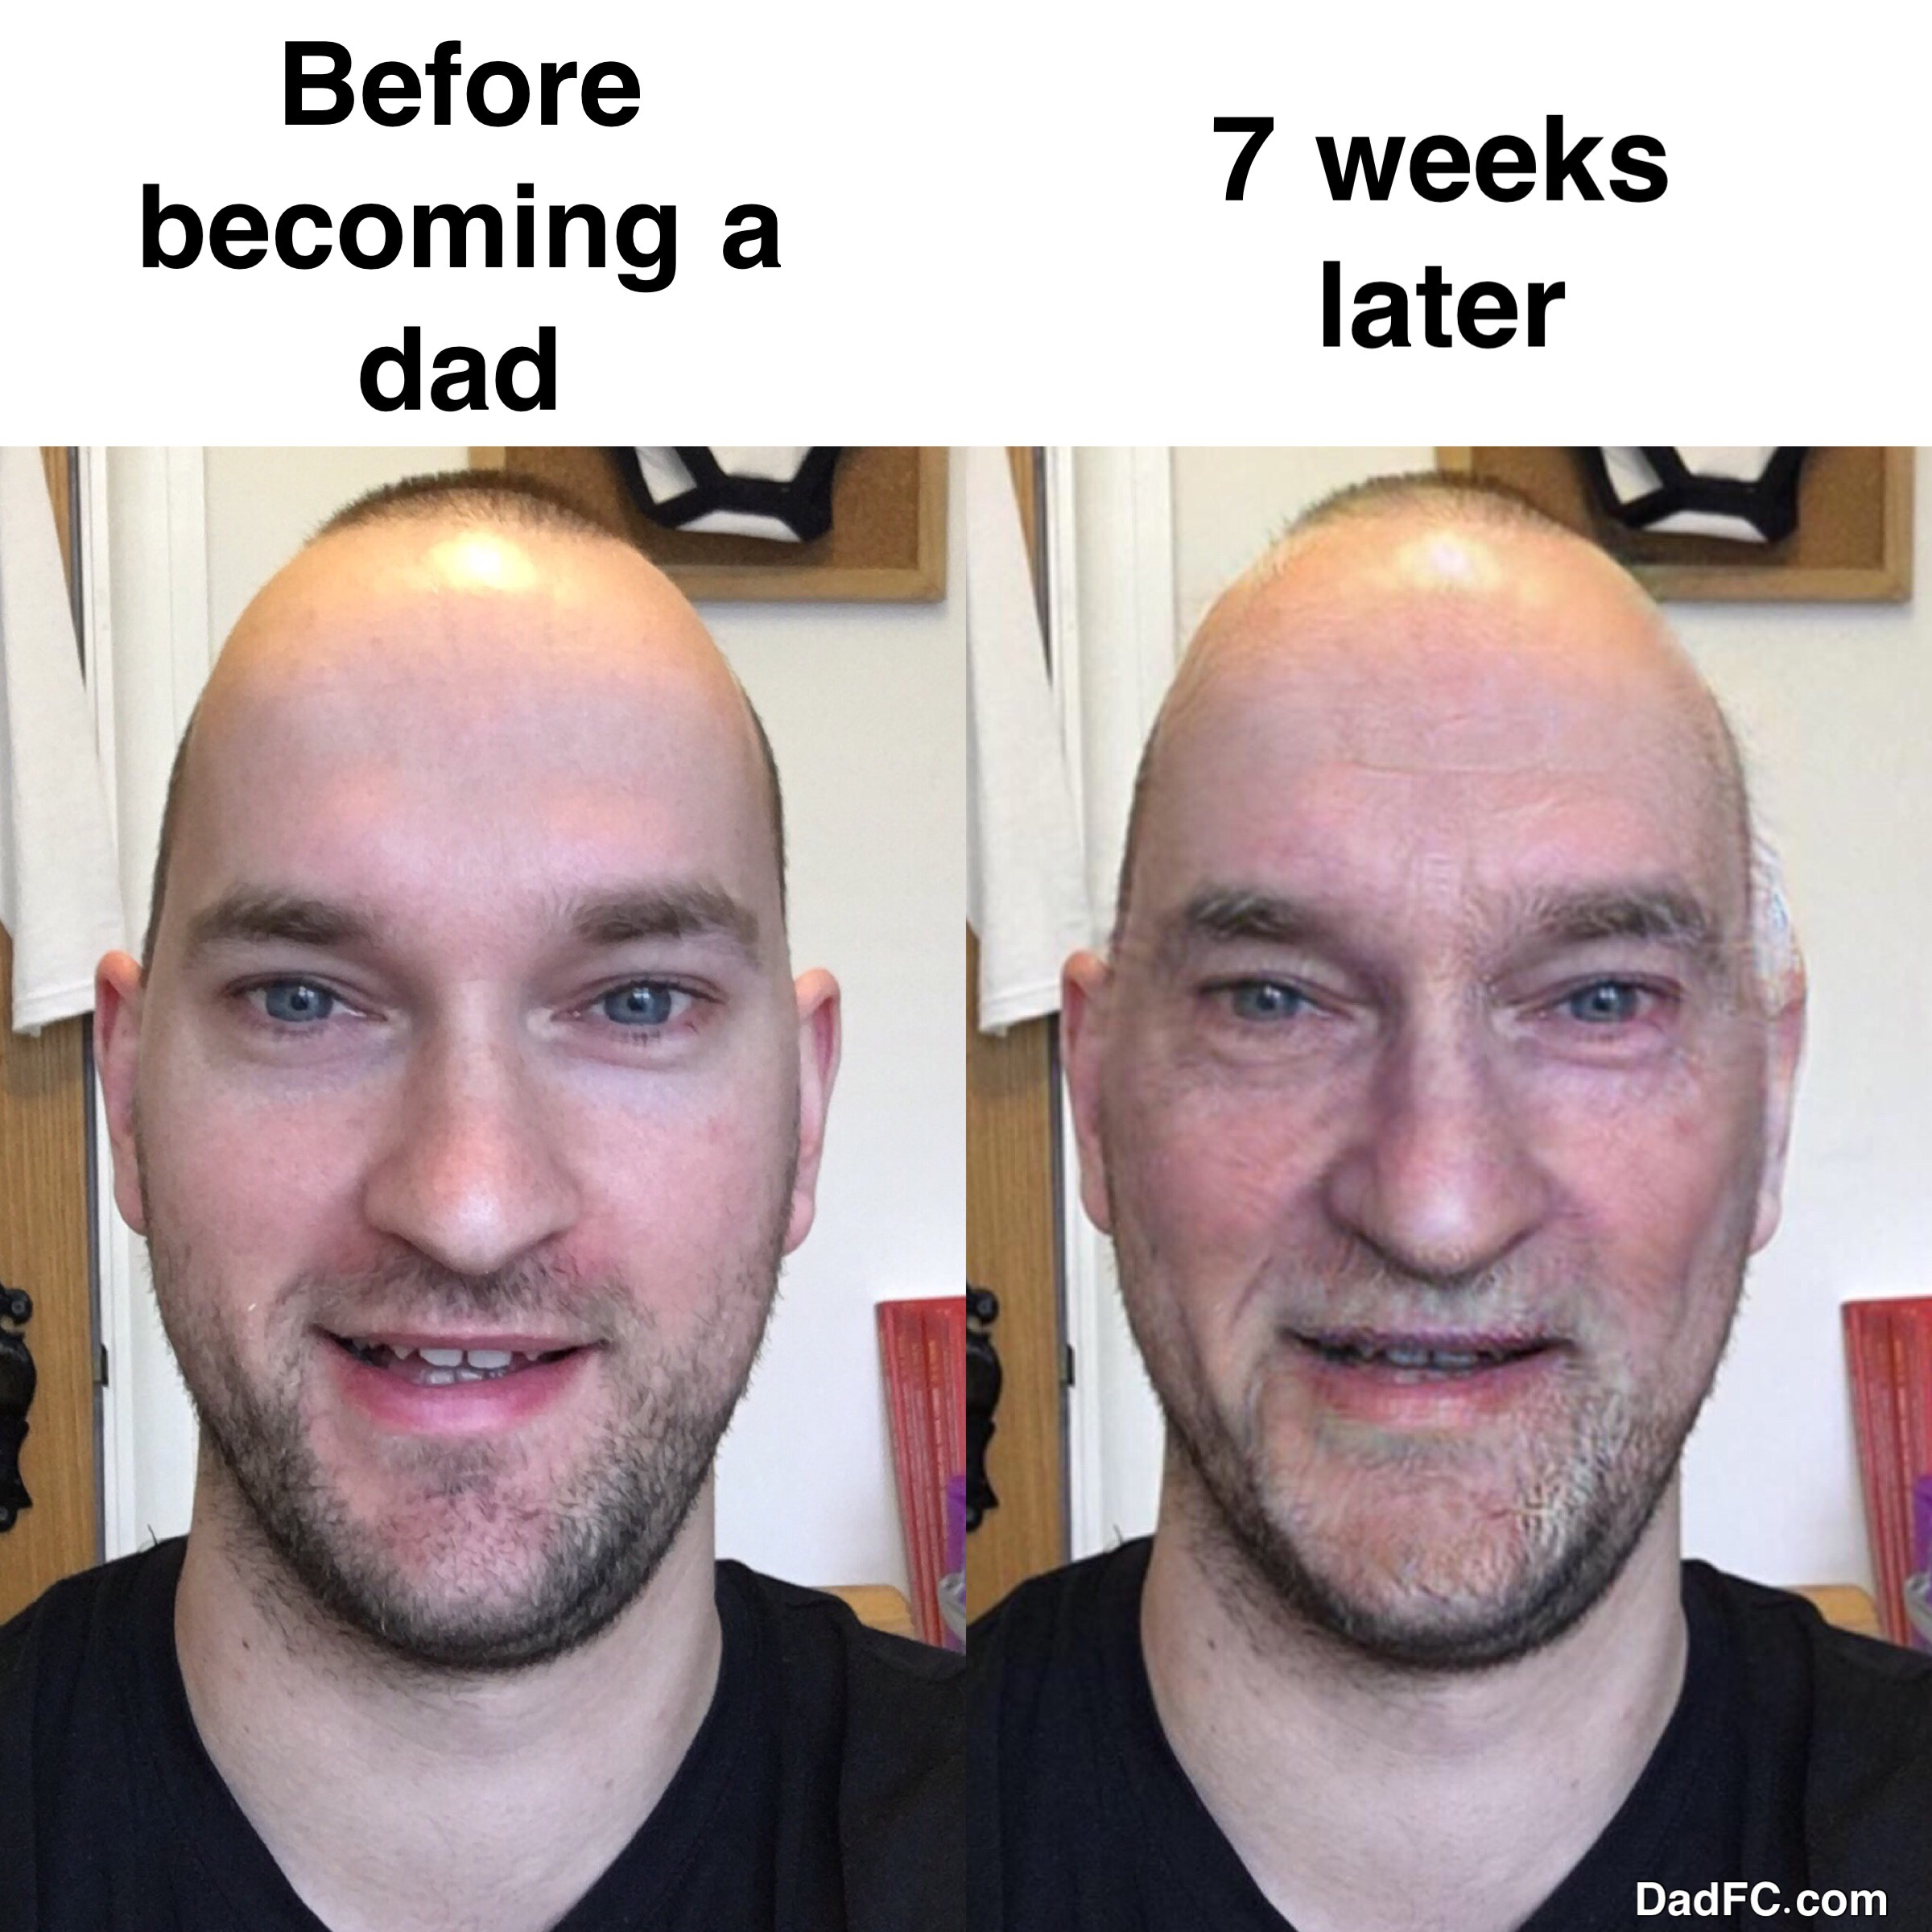 Rev up the signs of ageing. Become a dad.